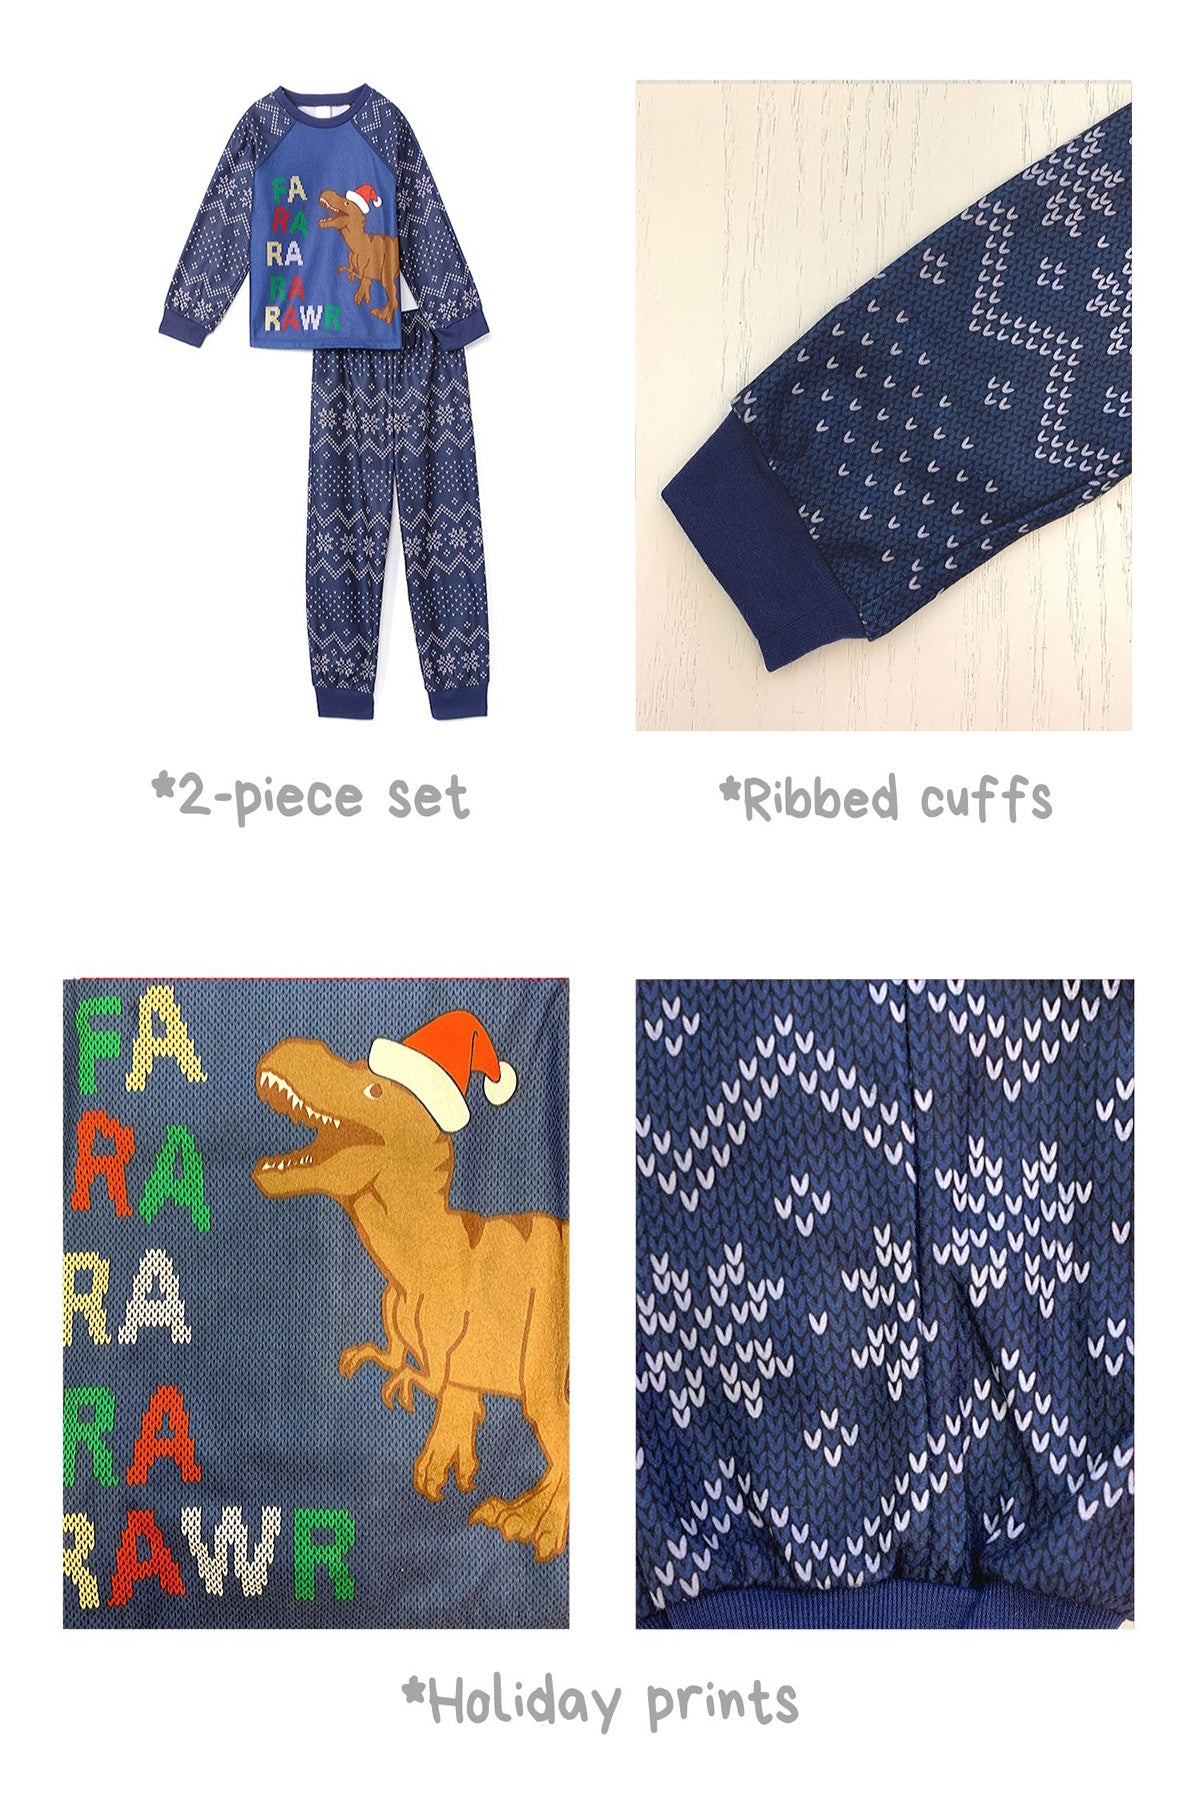 Sleepimini Fa-ra-rawr Dino Ugly Sweater PJ set, Navy